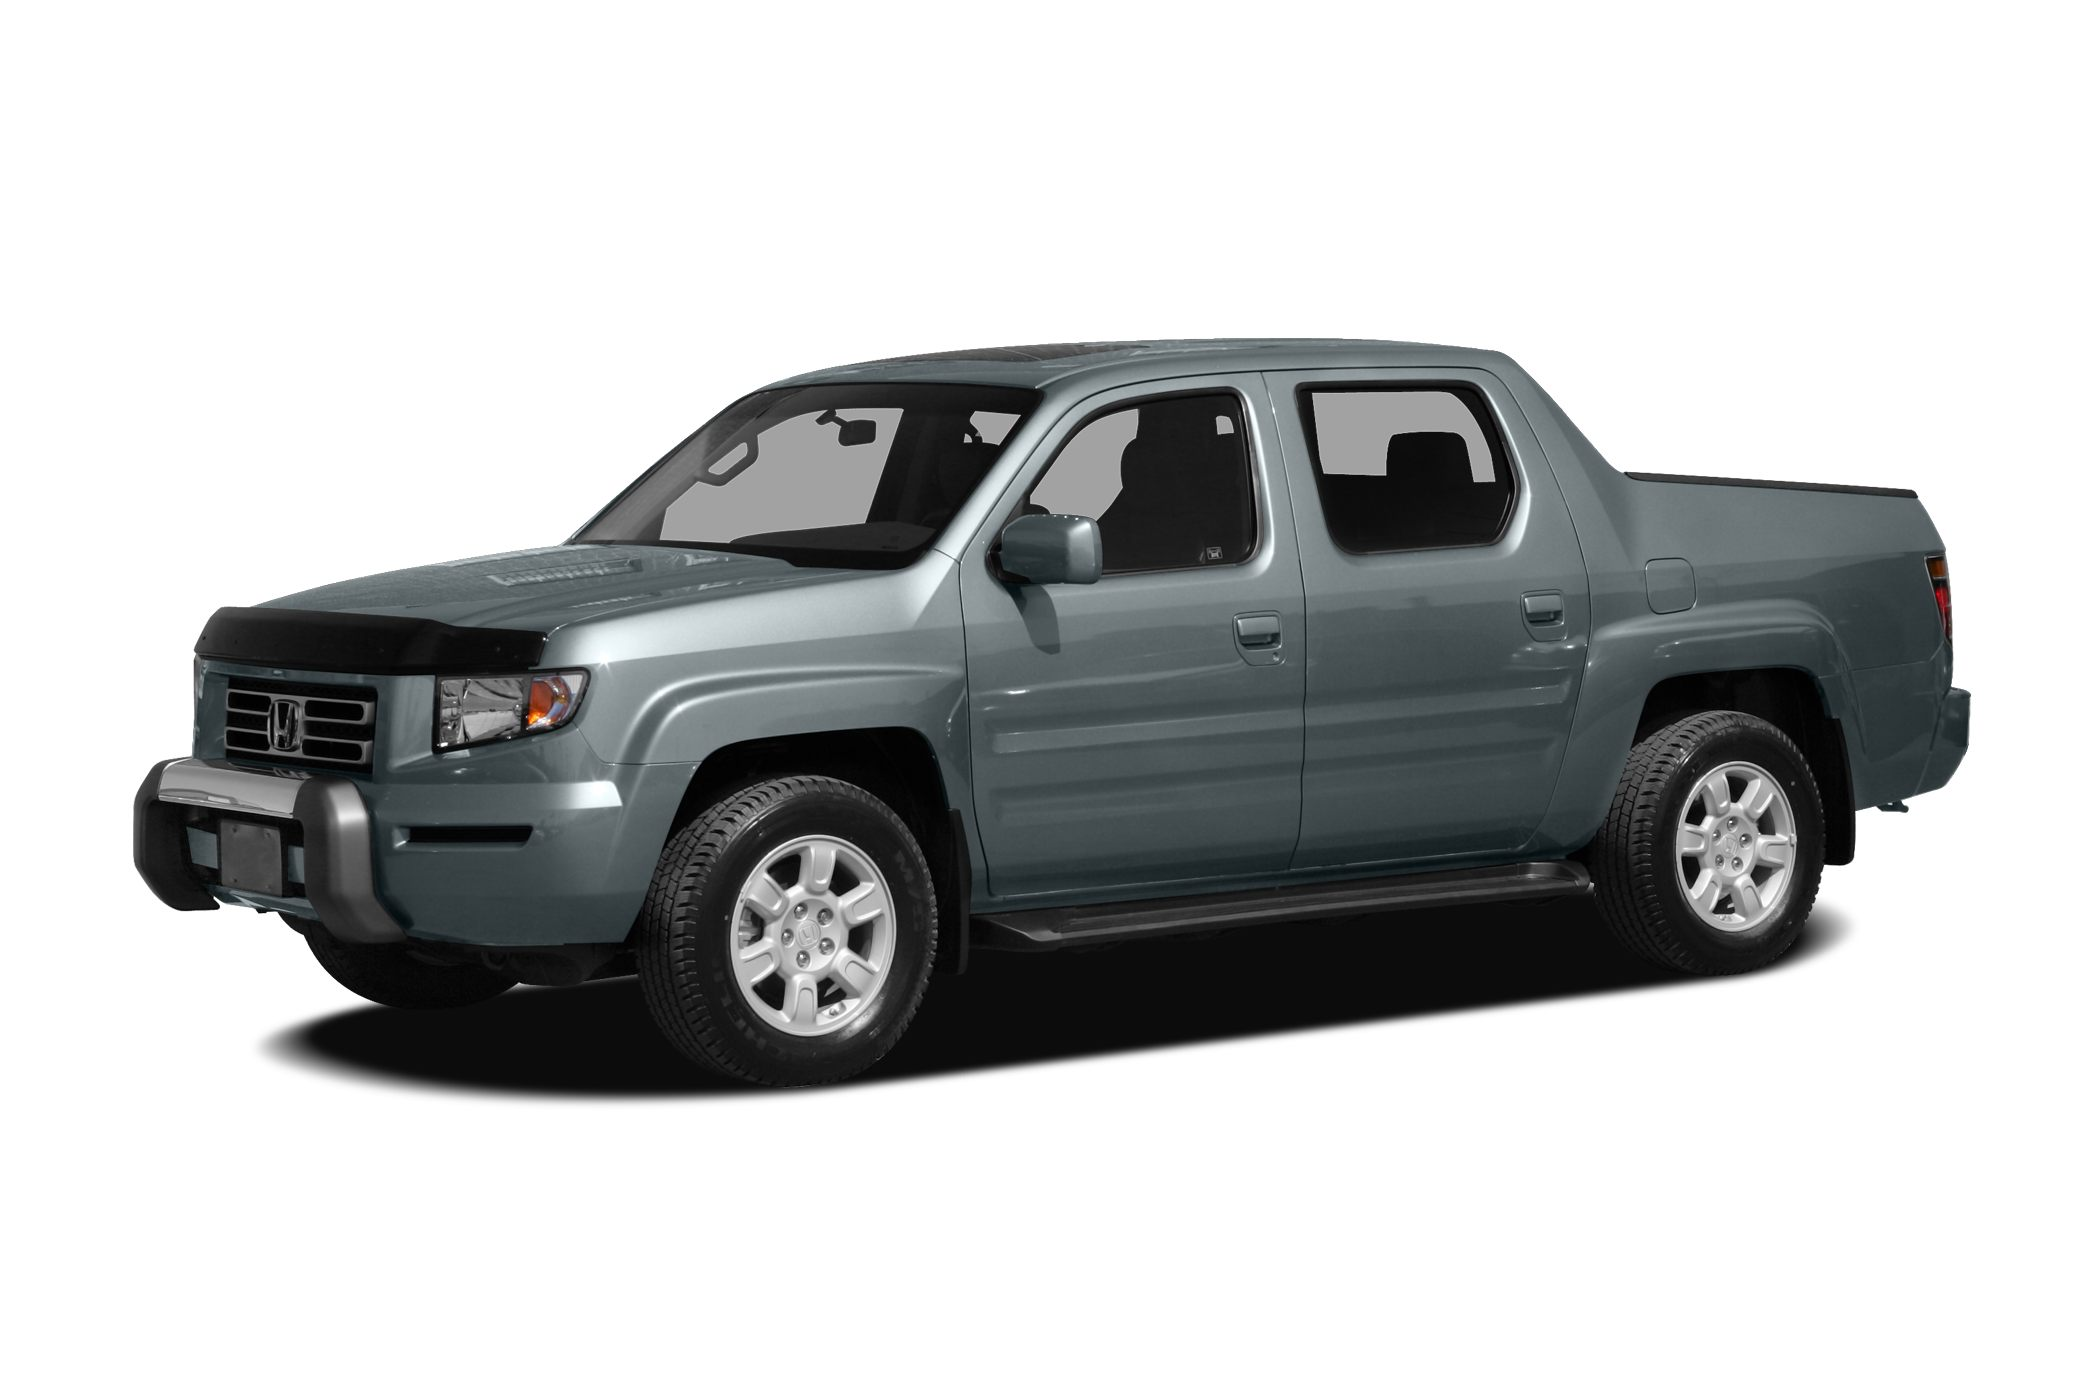 2008 Honda Ridgeline RTL Crew Cab Pickup for sale in Killeen for $0 with 45,763 miles